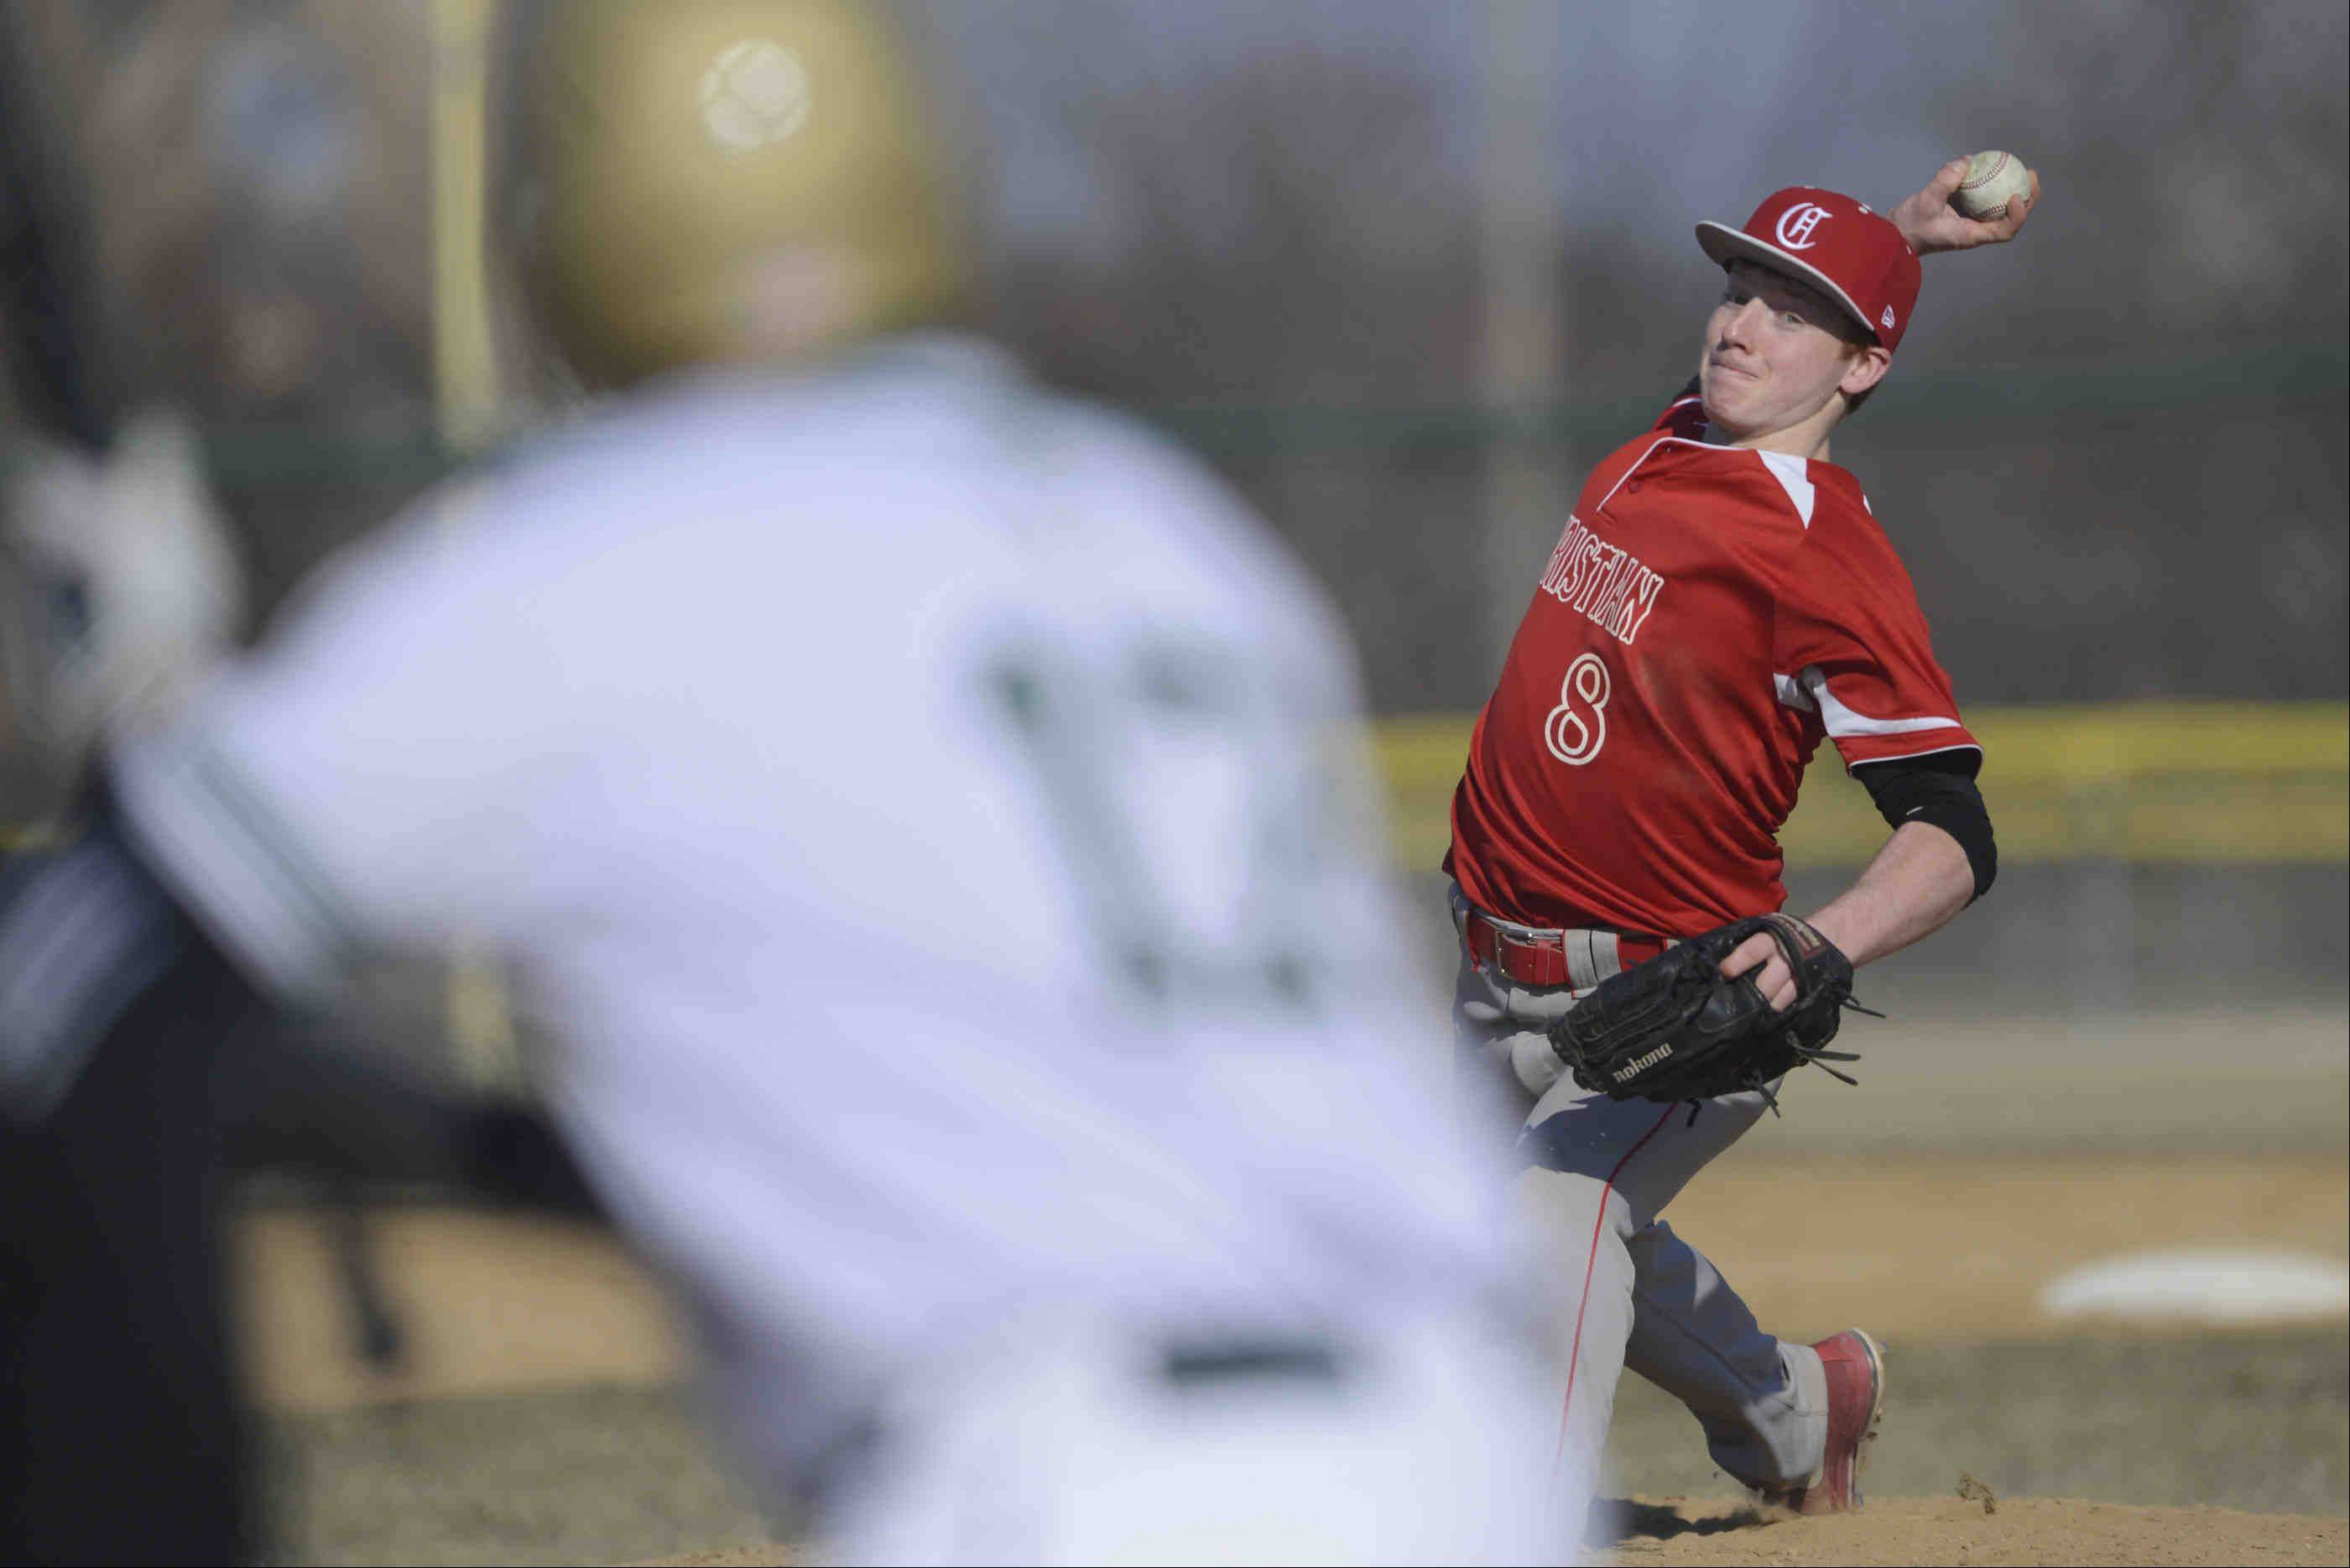 Aurora Christian starting pitcher Chase Tomney delivers against St. Edward's Jake Lafrenz Thursday in Elgin.